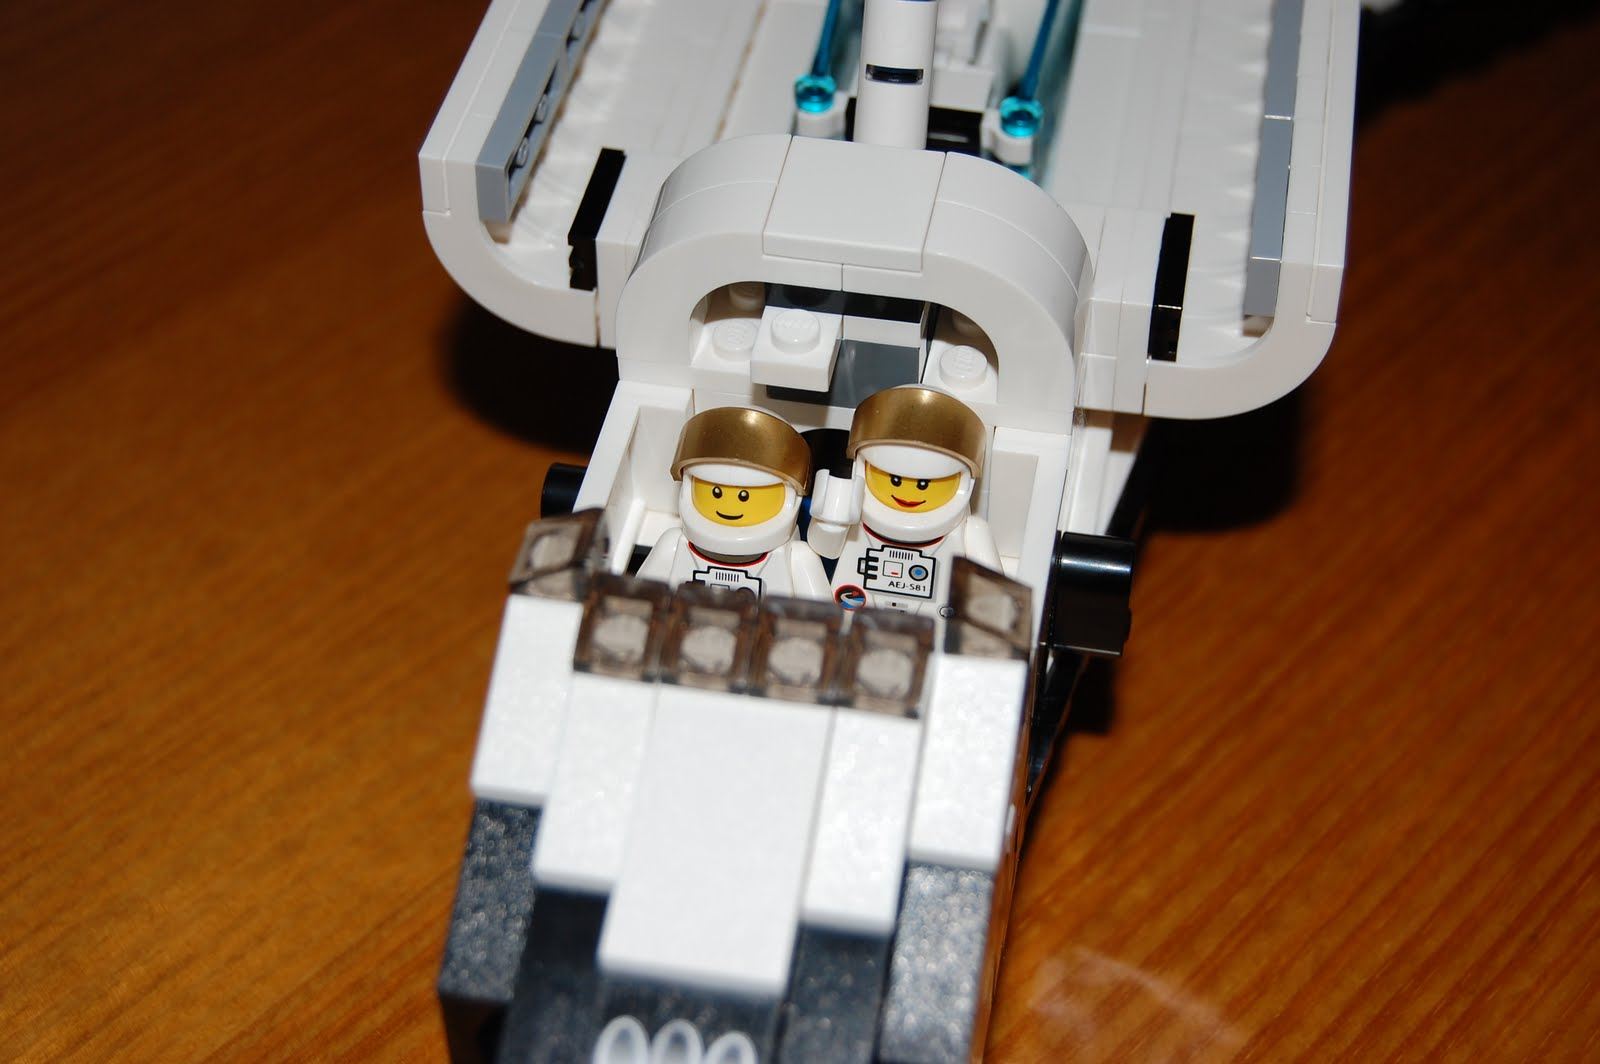 lego space shuttle a - photo #40